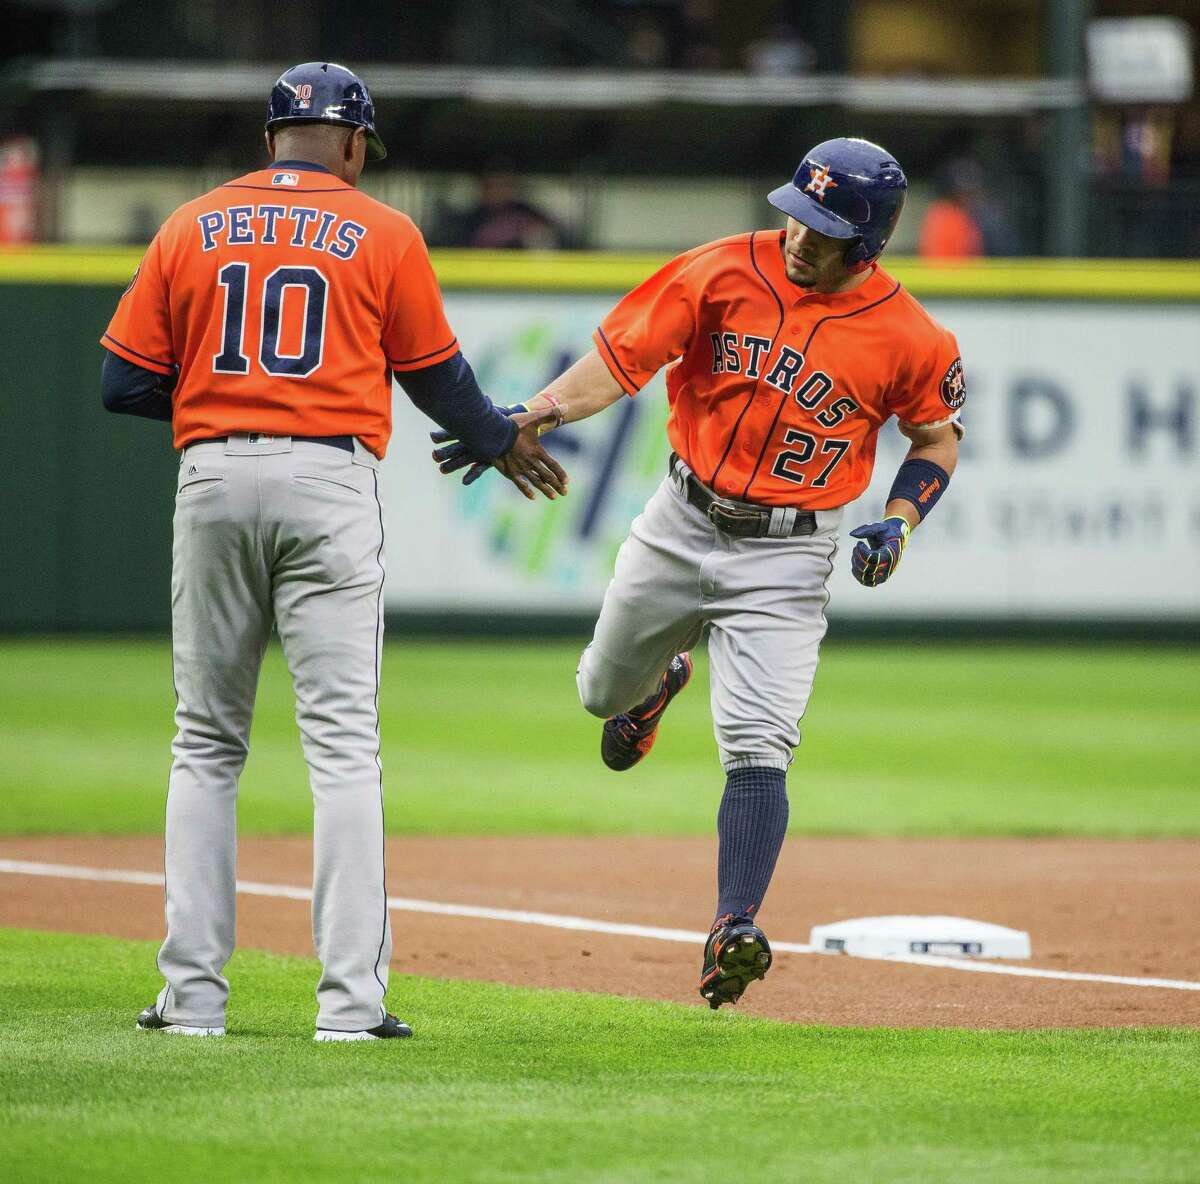 Houston Astros' Jose Altuve heads home after slapping a solo home run of Seattle Mariners pitcher Hisashi Iwakuma on Wednesday, April 27, 2016, at Safeco Field in Seattle.